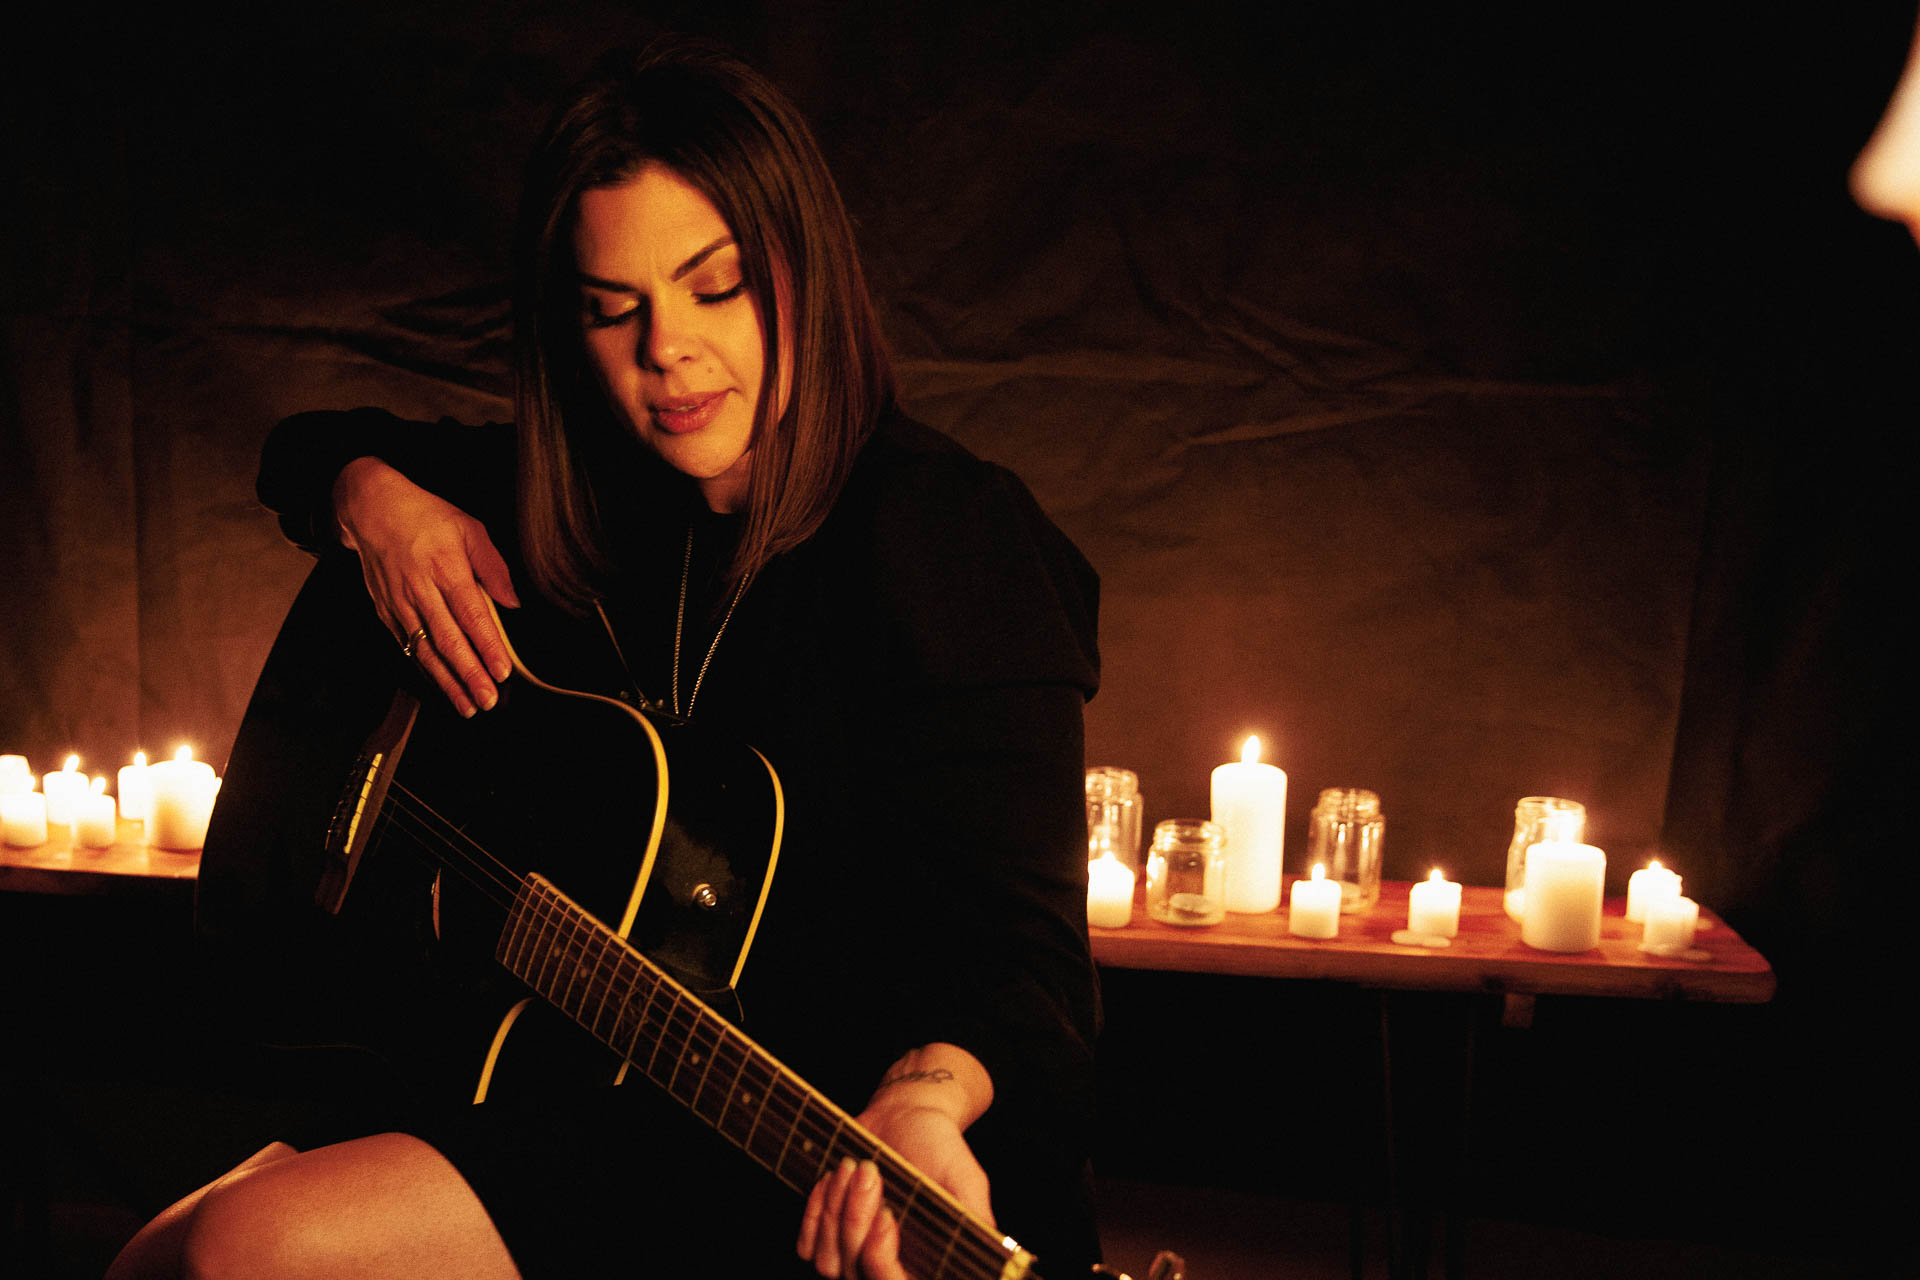 Portrait of Jessica Wishart with a guitar and candles in the background